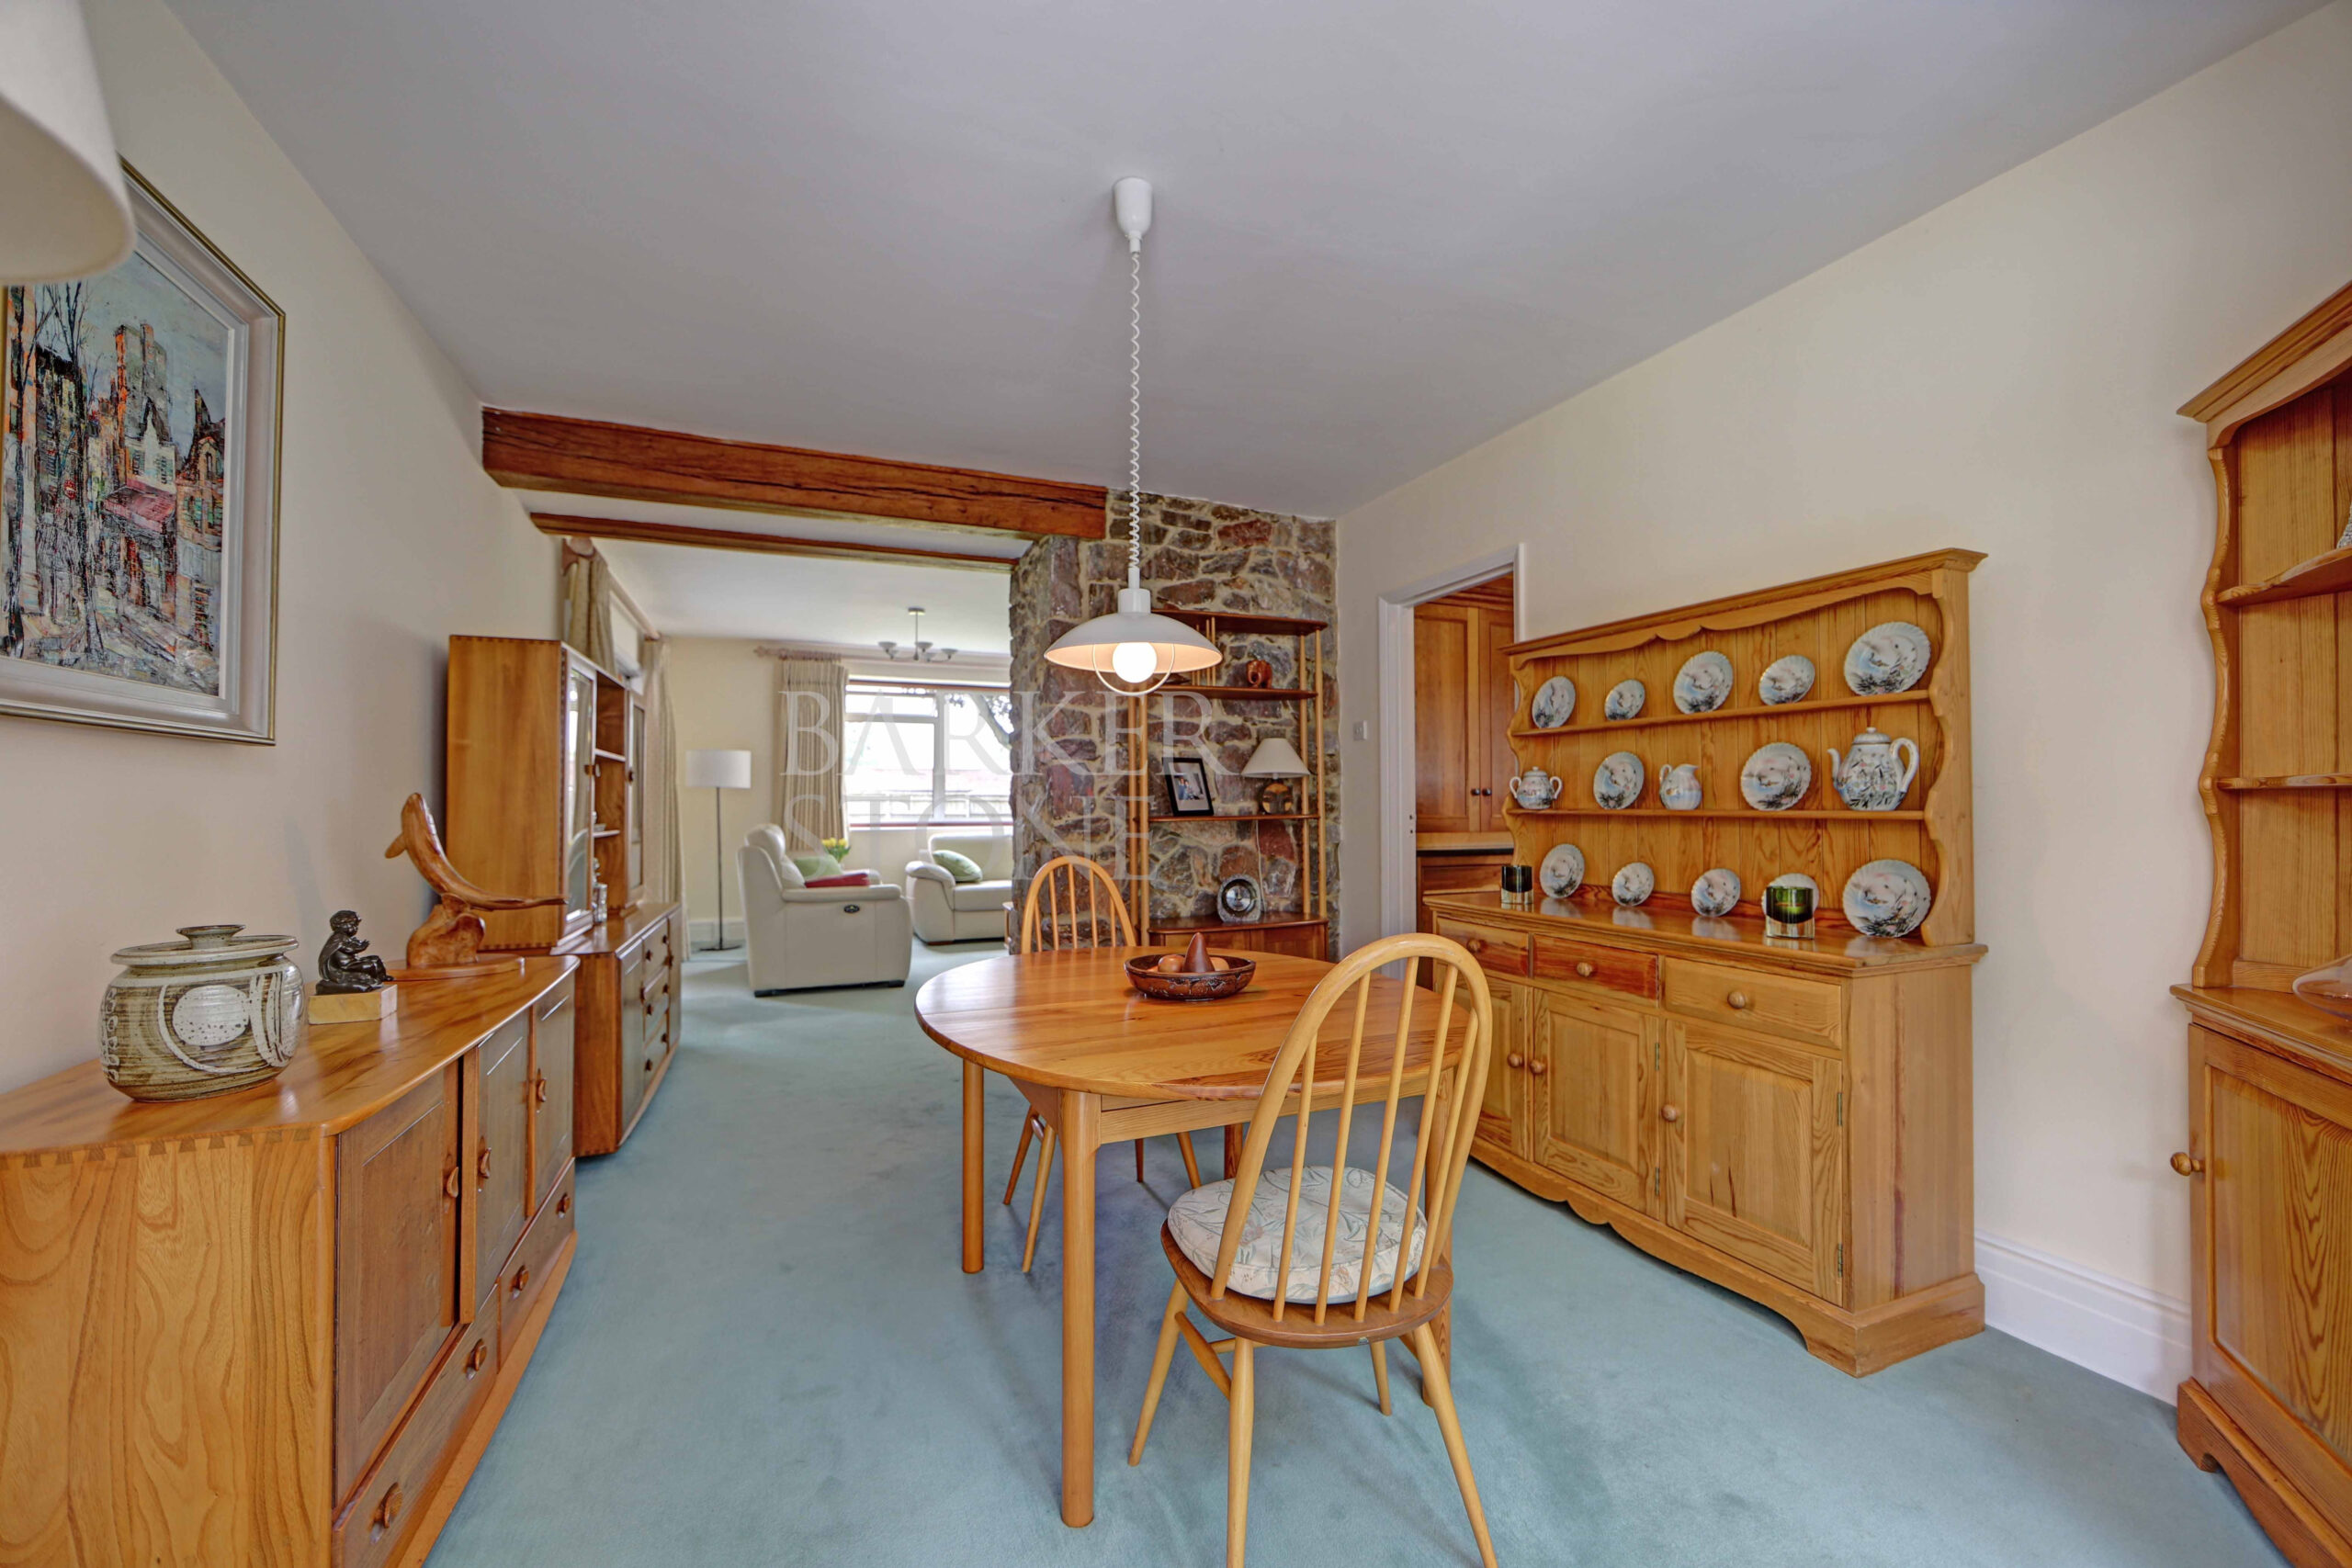 Cryers Hill, Great Kingshill   House For Sale   Barker Stone pertaining to Triple C School Fees